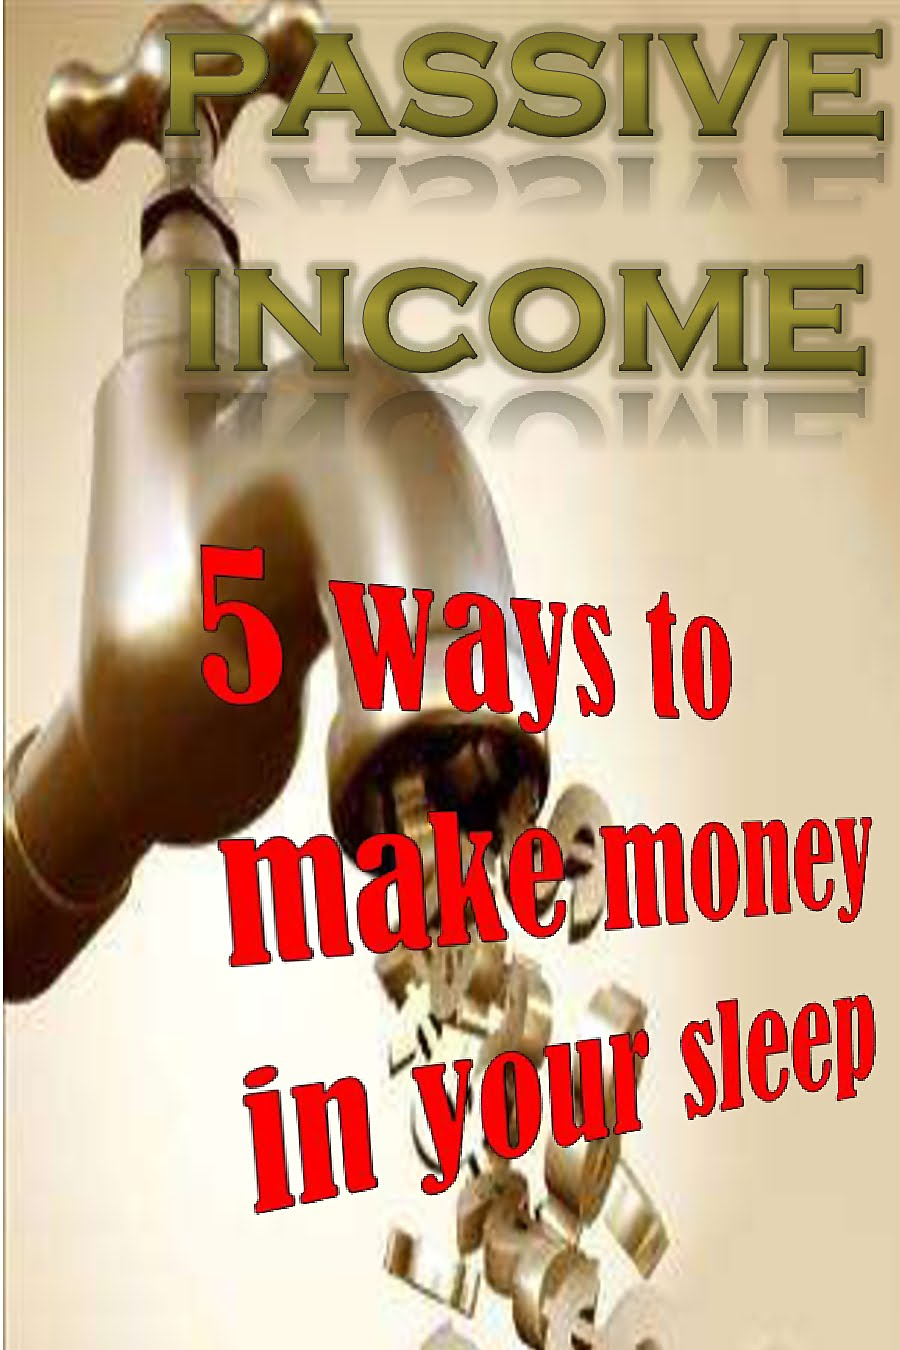 5 ways to make money in your sleep